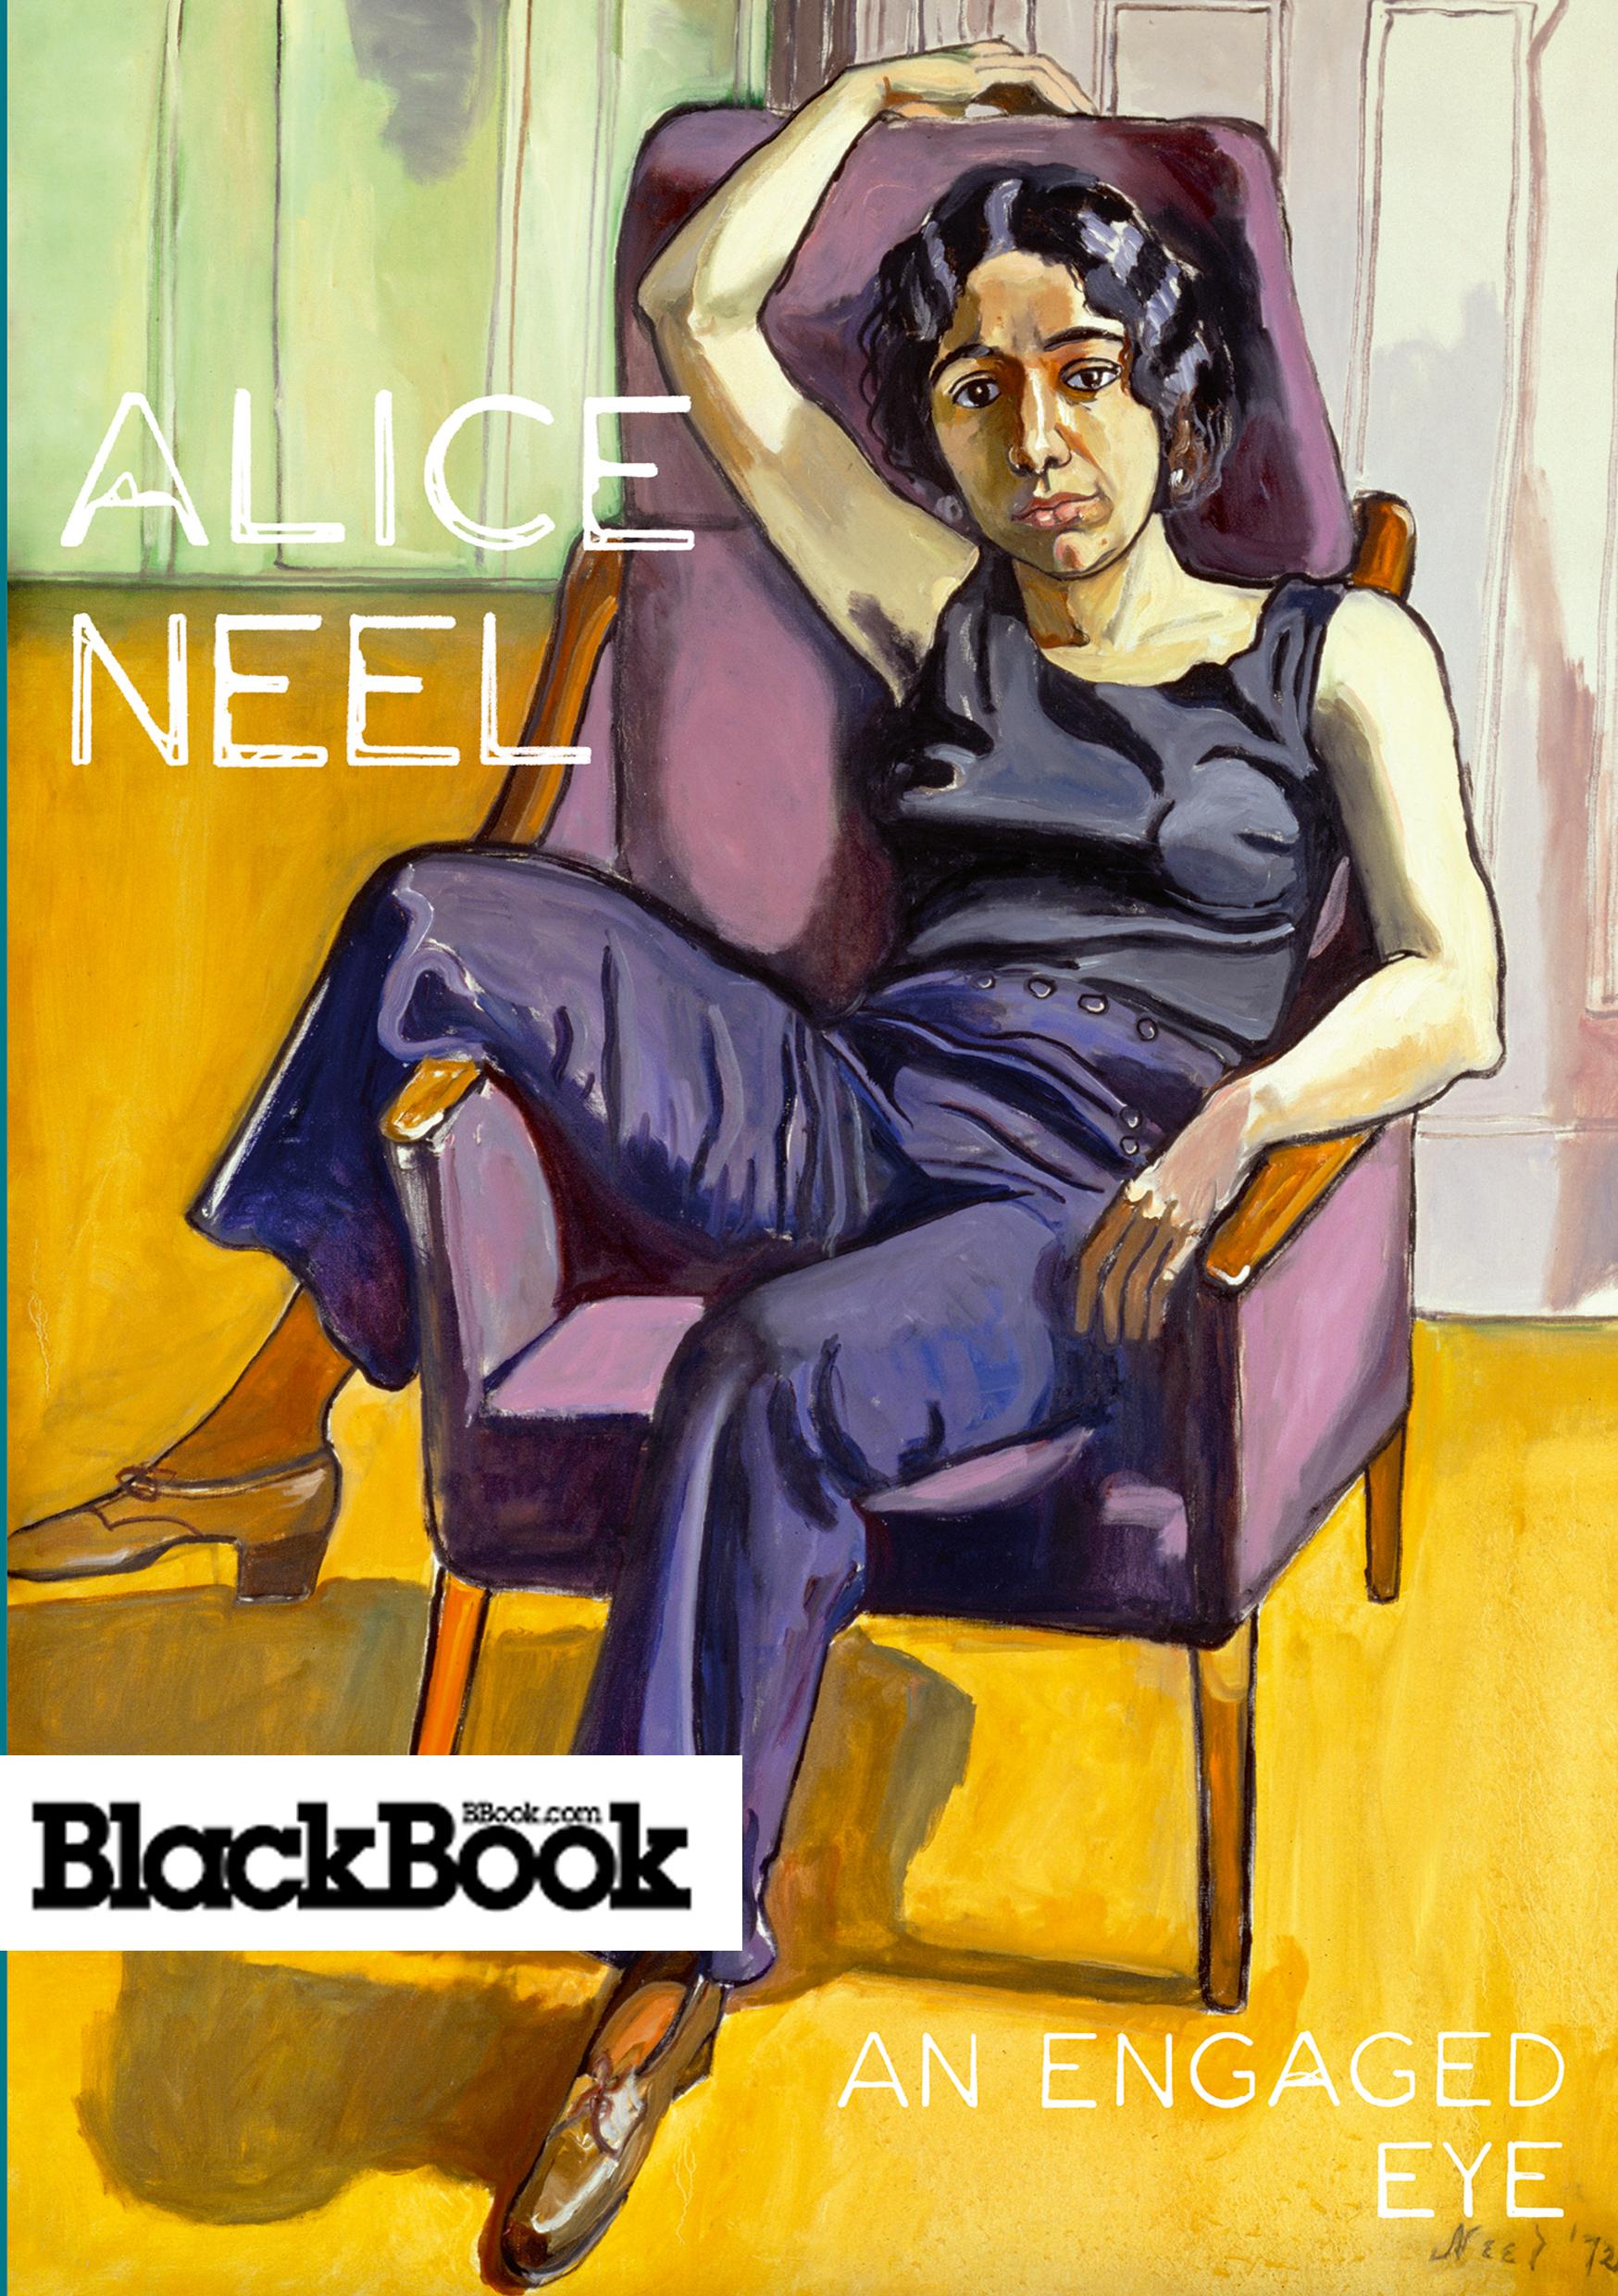 Accompanying a major exhibition at the Centre Georges Pompidou in Paris, this book explores the life and work of renowned feminist artist Alice Neel, 1900-1984.